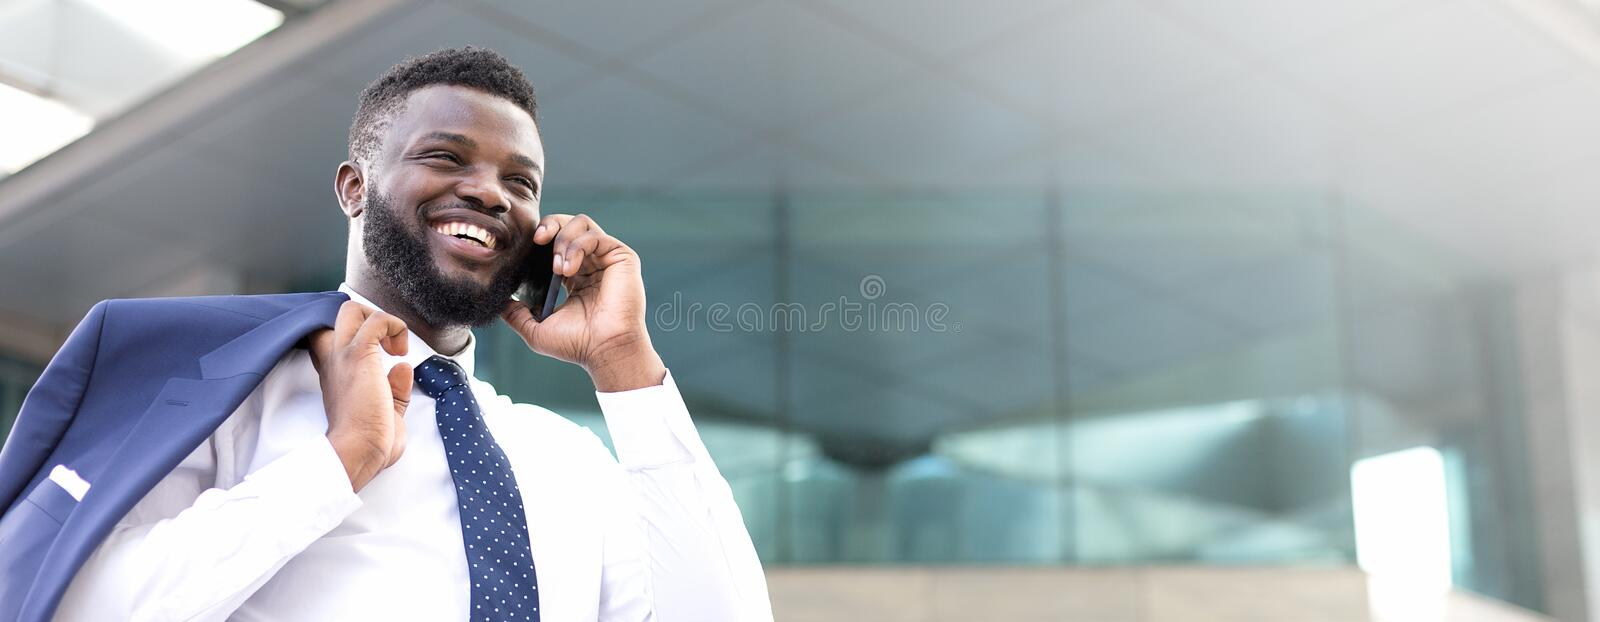 Happy african businessman holding his phone while standing near the building and looking straight ahead stock image